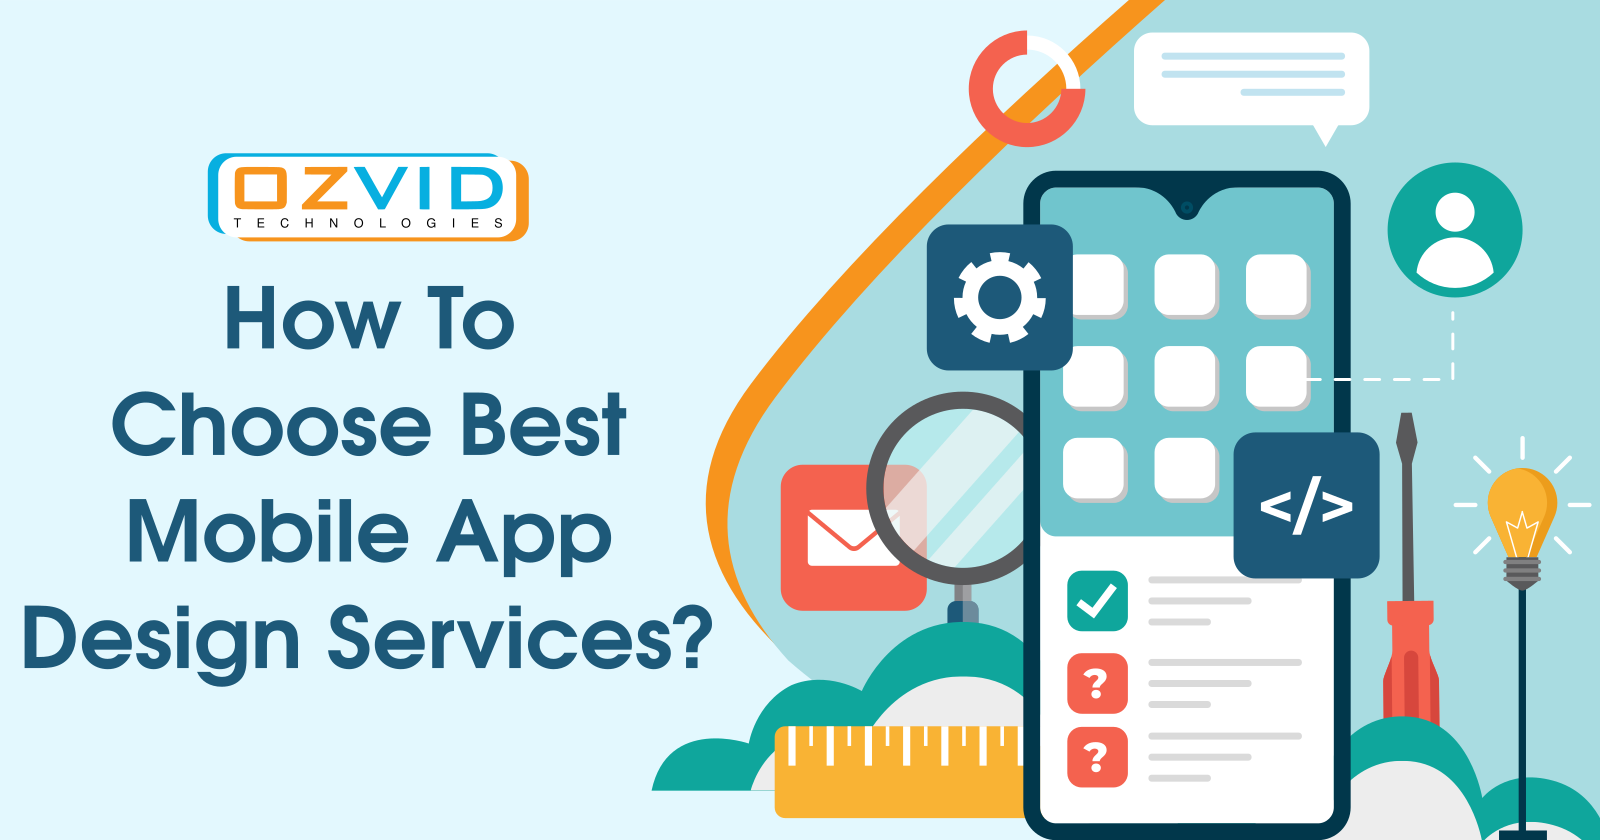 How To Choose Best Mobile App Design Services?